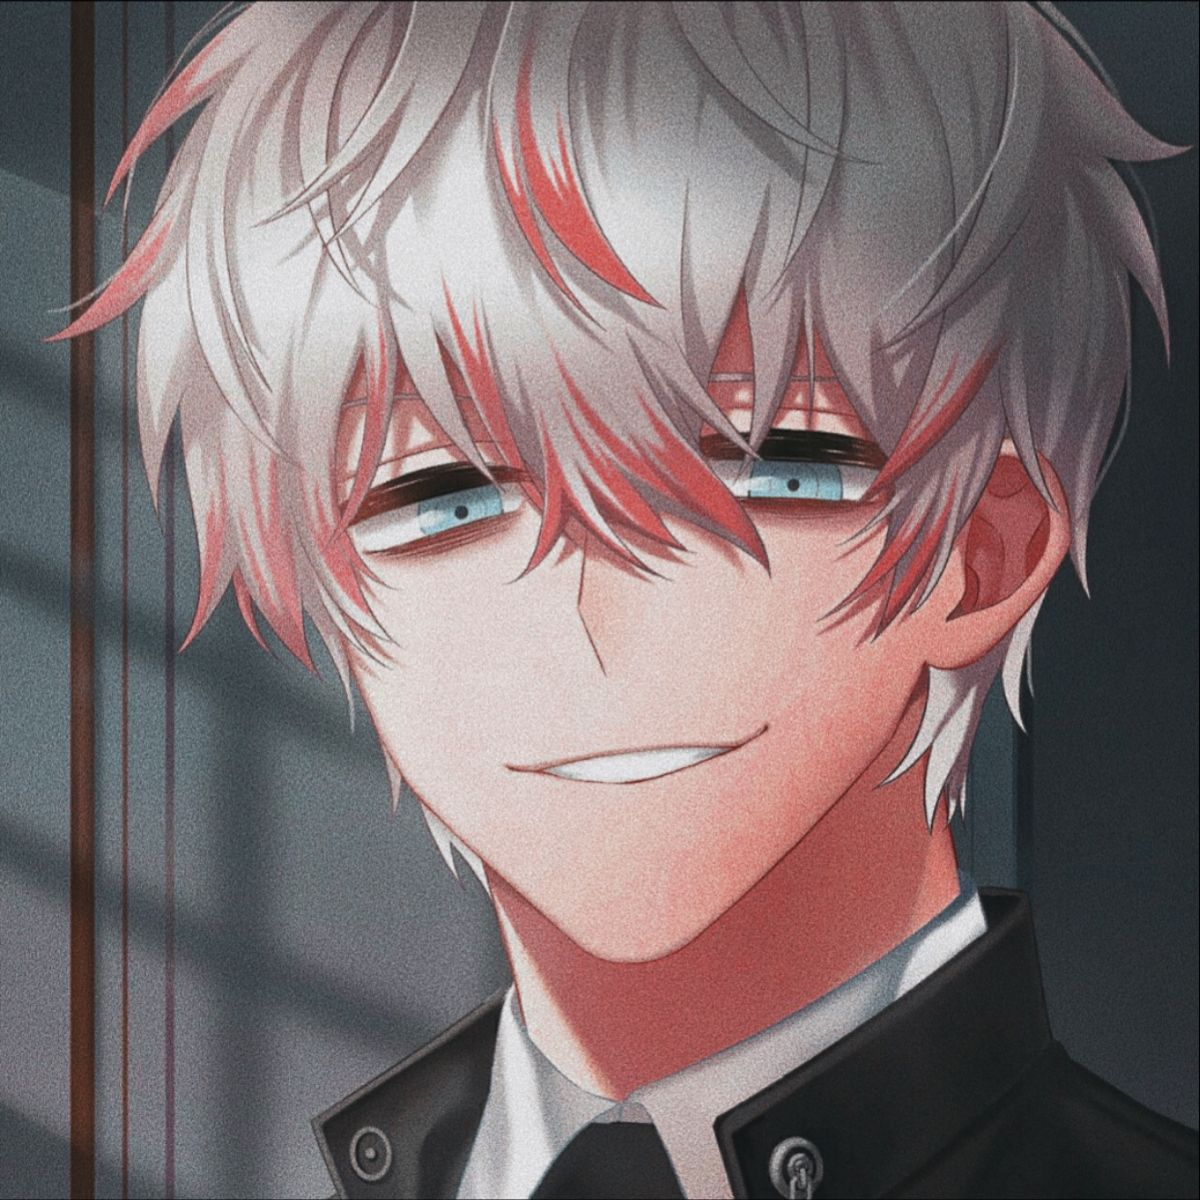 𝕒𝕝𝕪𝕩𝕩𝟜 in 2020 Mystic messenger, Anime, Saeran choi